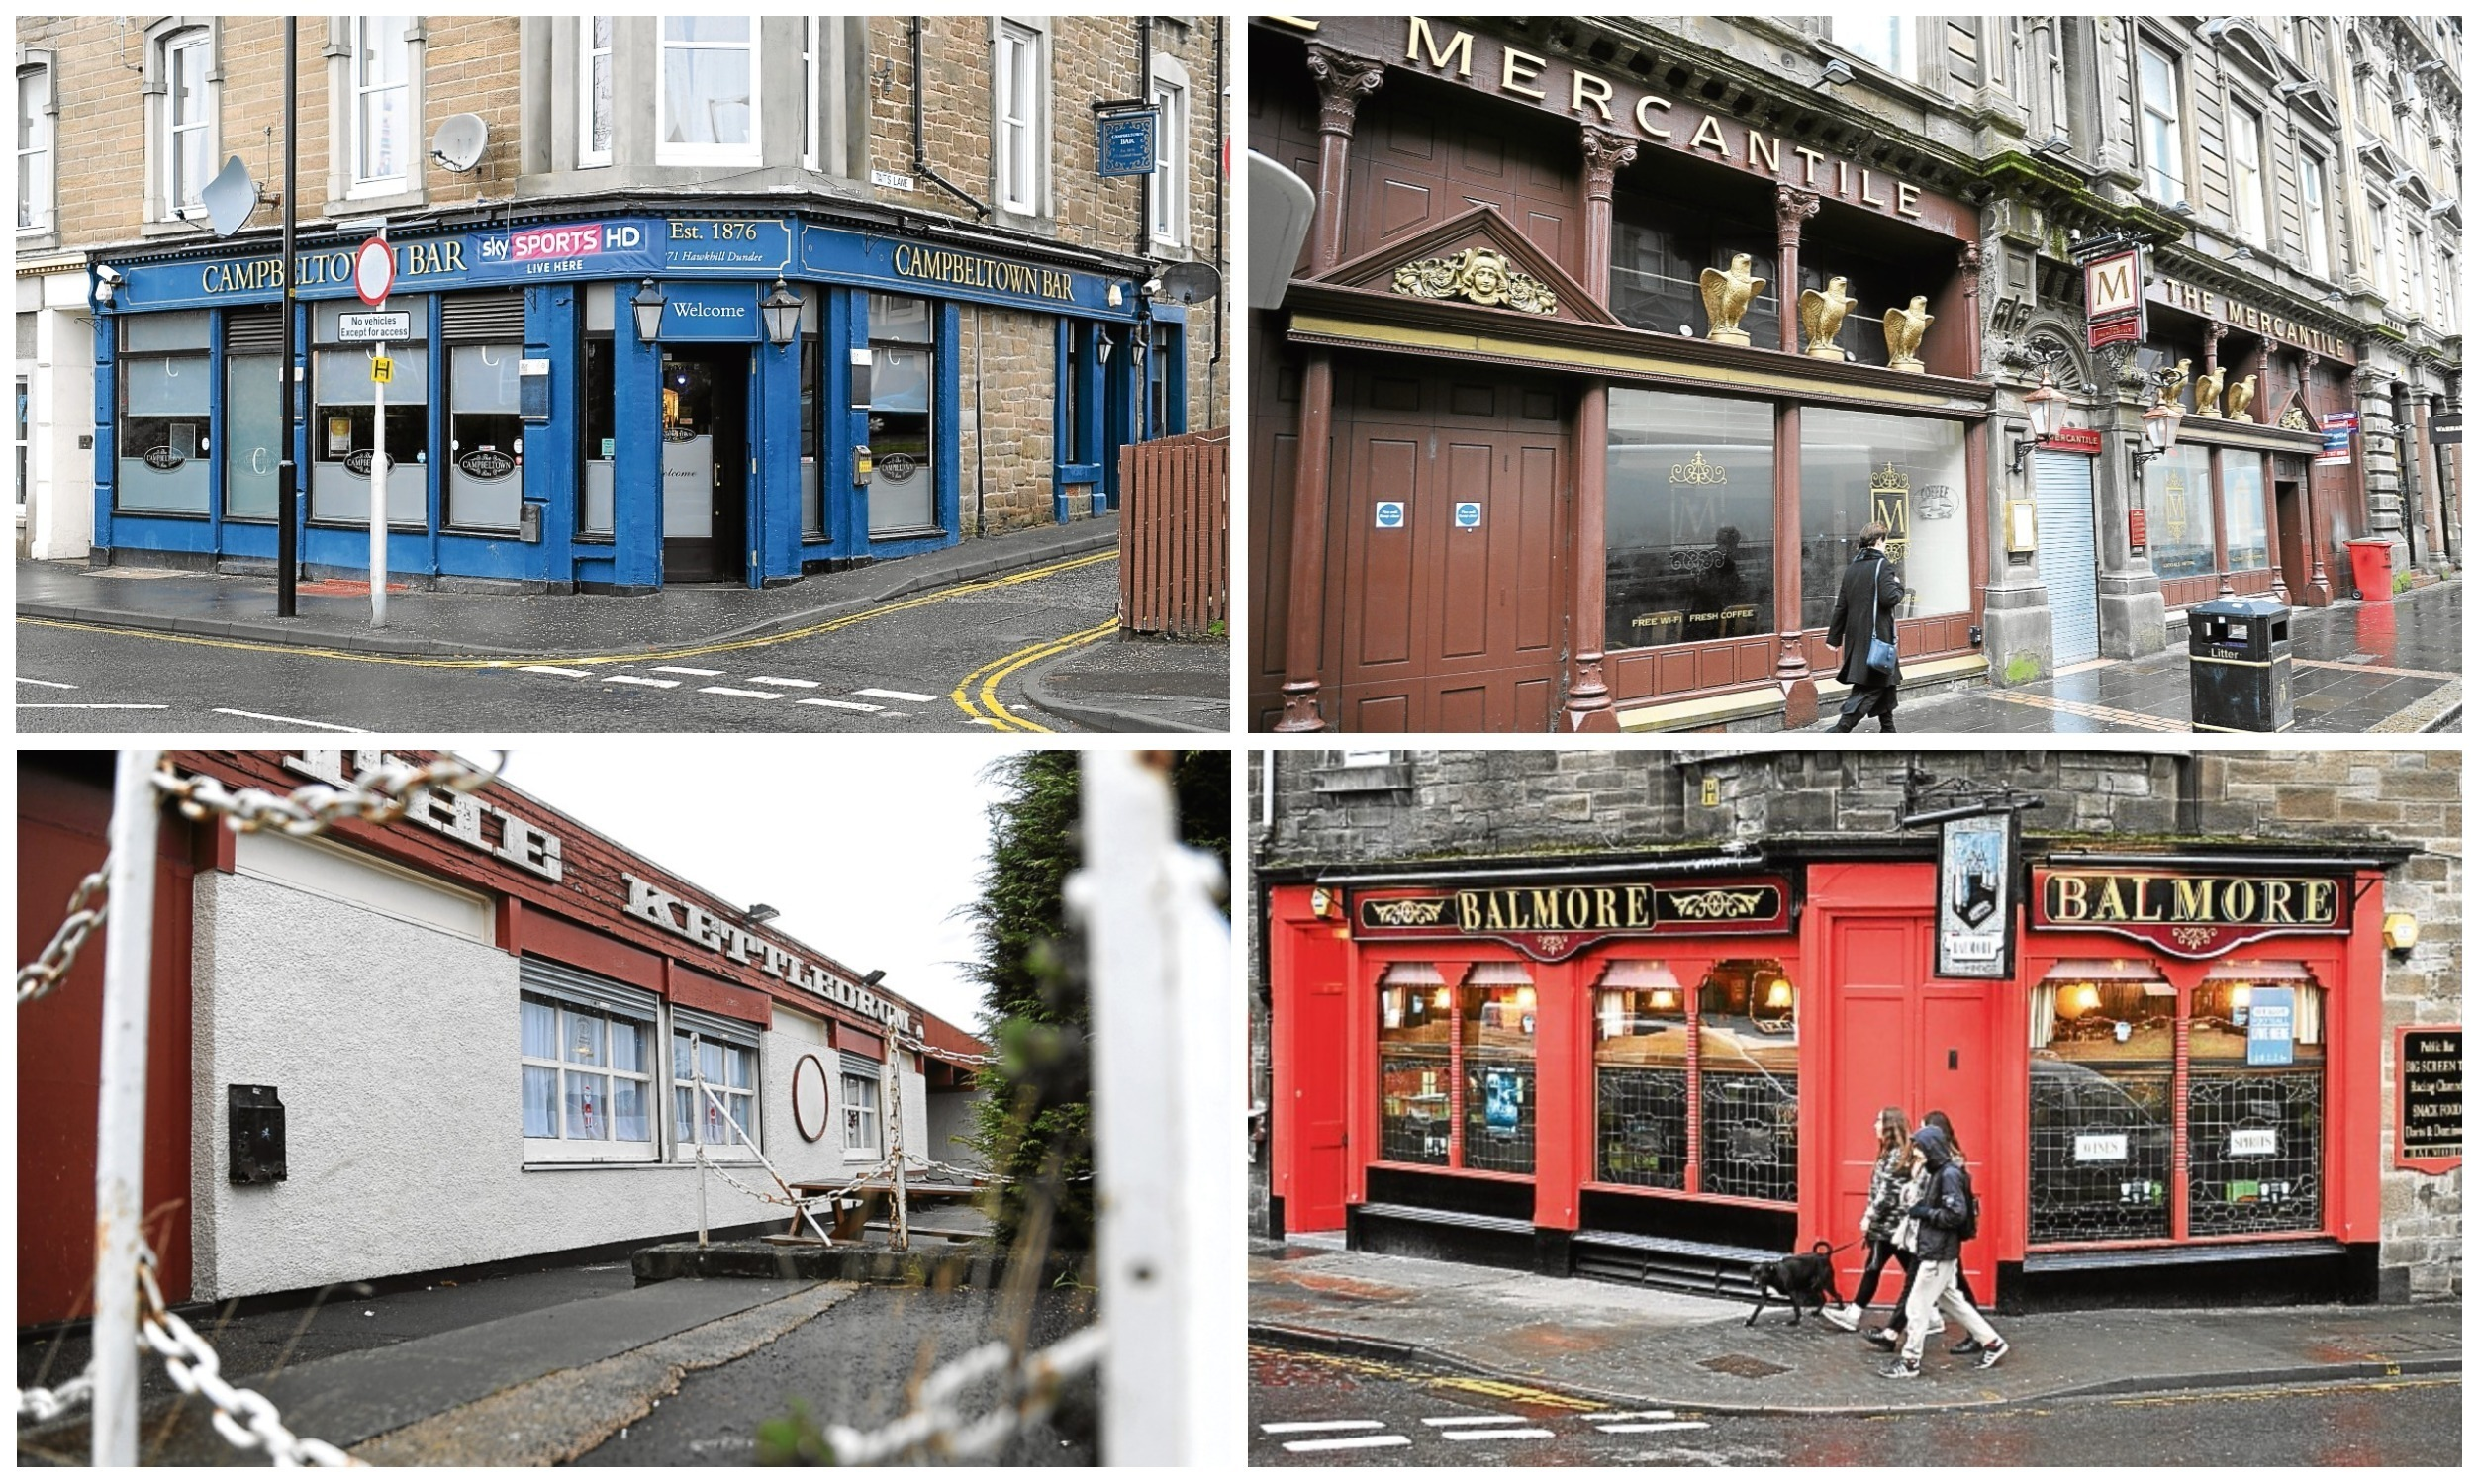 Some of the Dundee pubs that have either closed or are up for sale or lease.